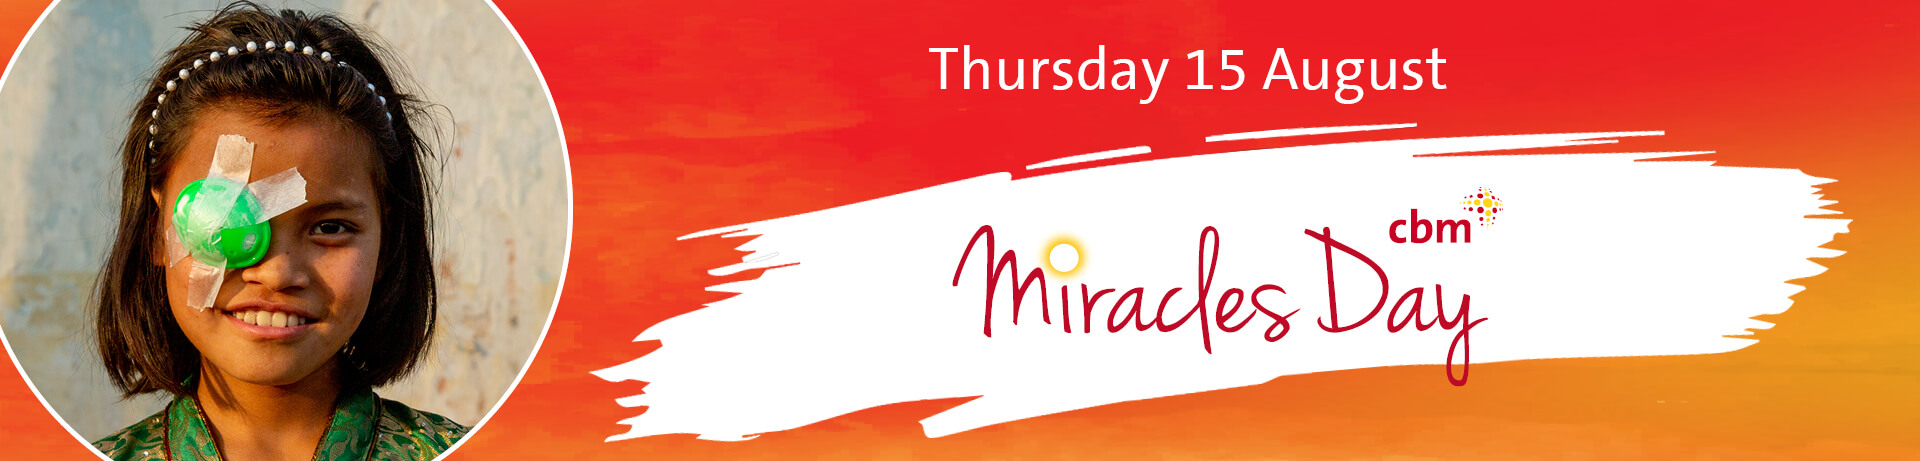 Miracles Day Thursday 15th August